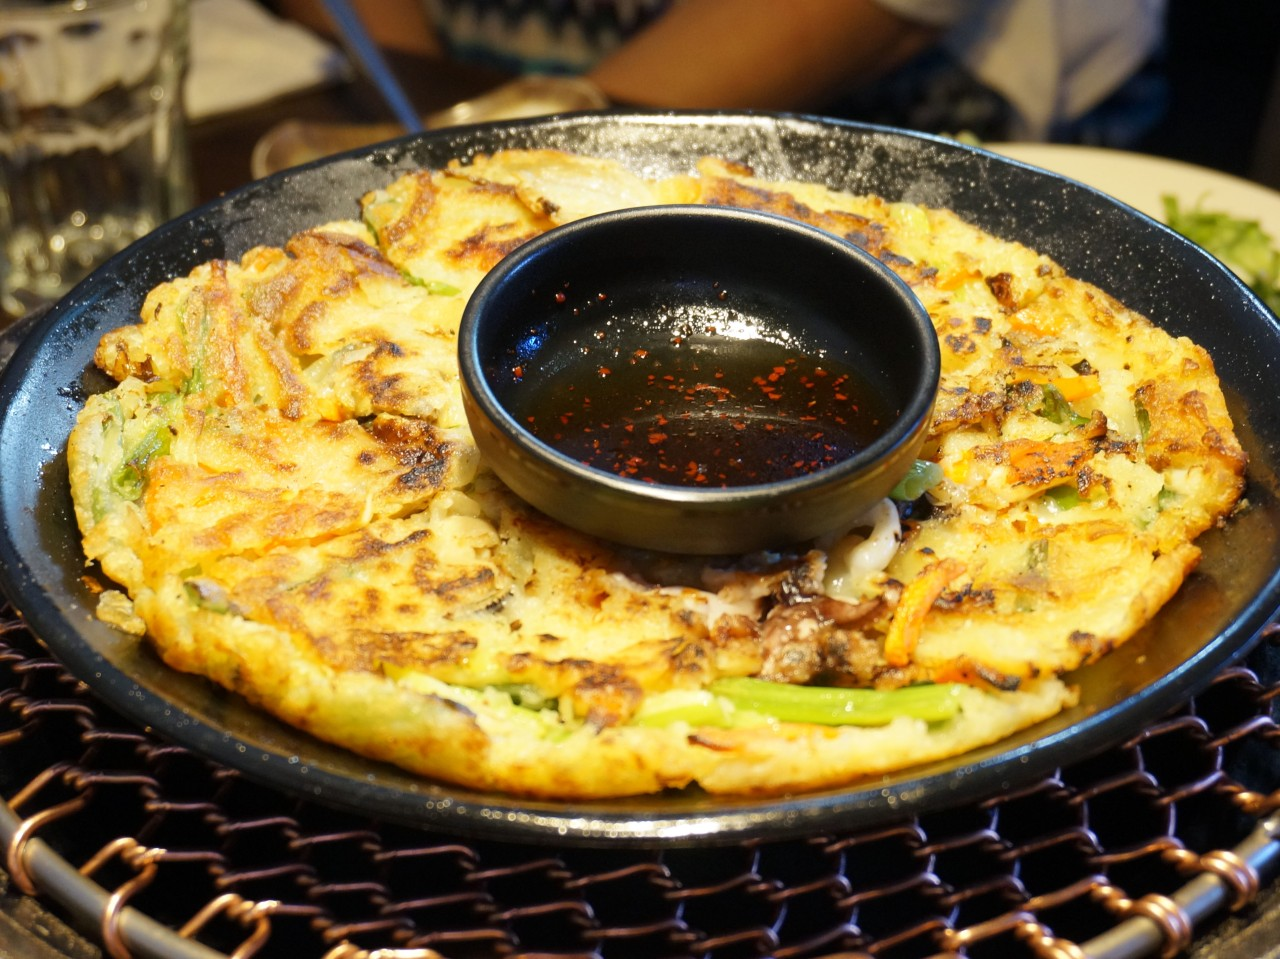 Seafood pancake - really tasty with lots and lots of vegetables.  Central sweet chilli type of dressing to accompany the dish.